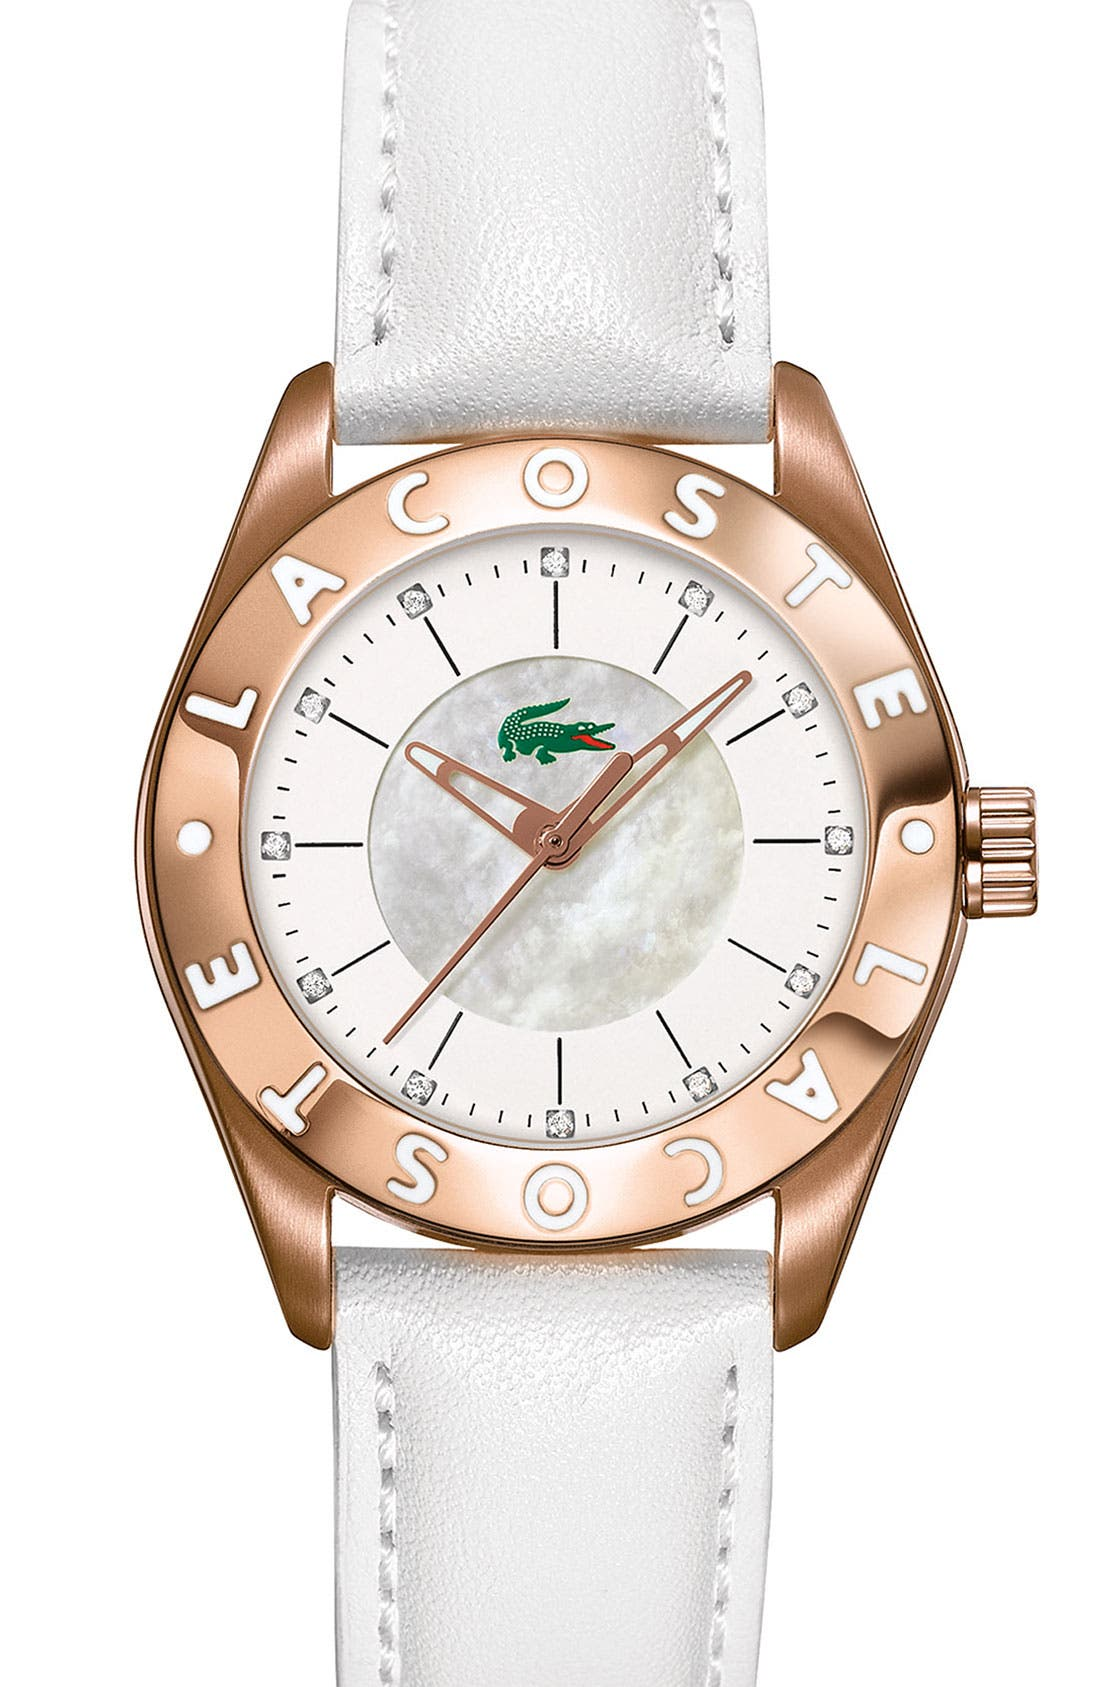 Alternate Image 1 Selected - Lacoste 'Biarritz' Stainless Steel Watch